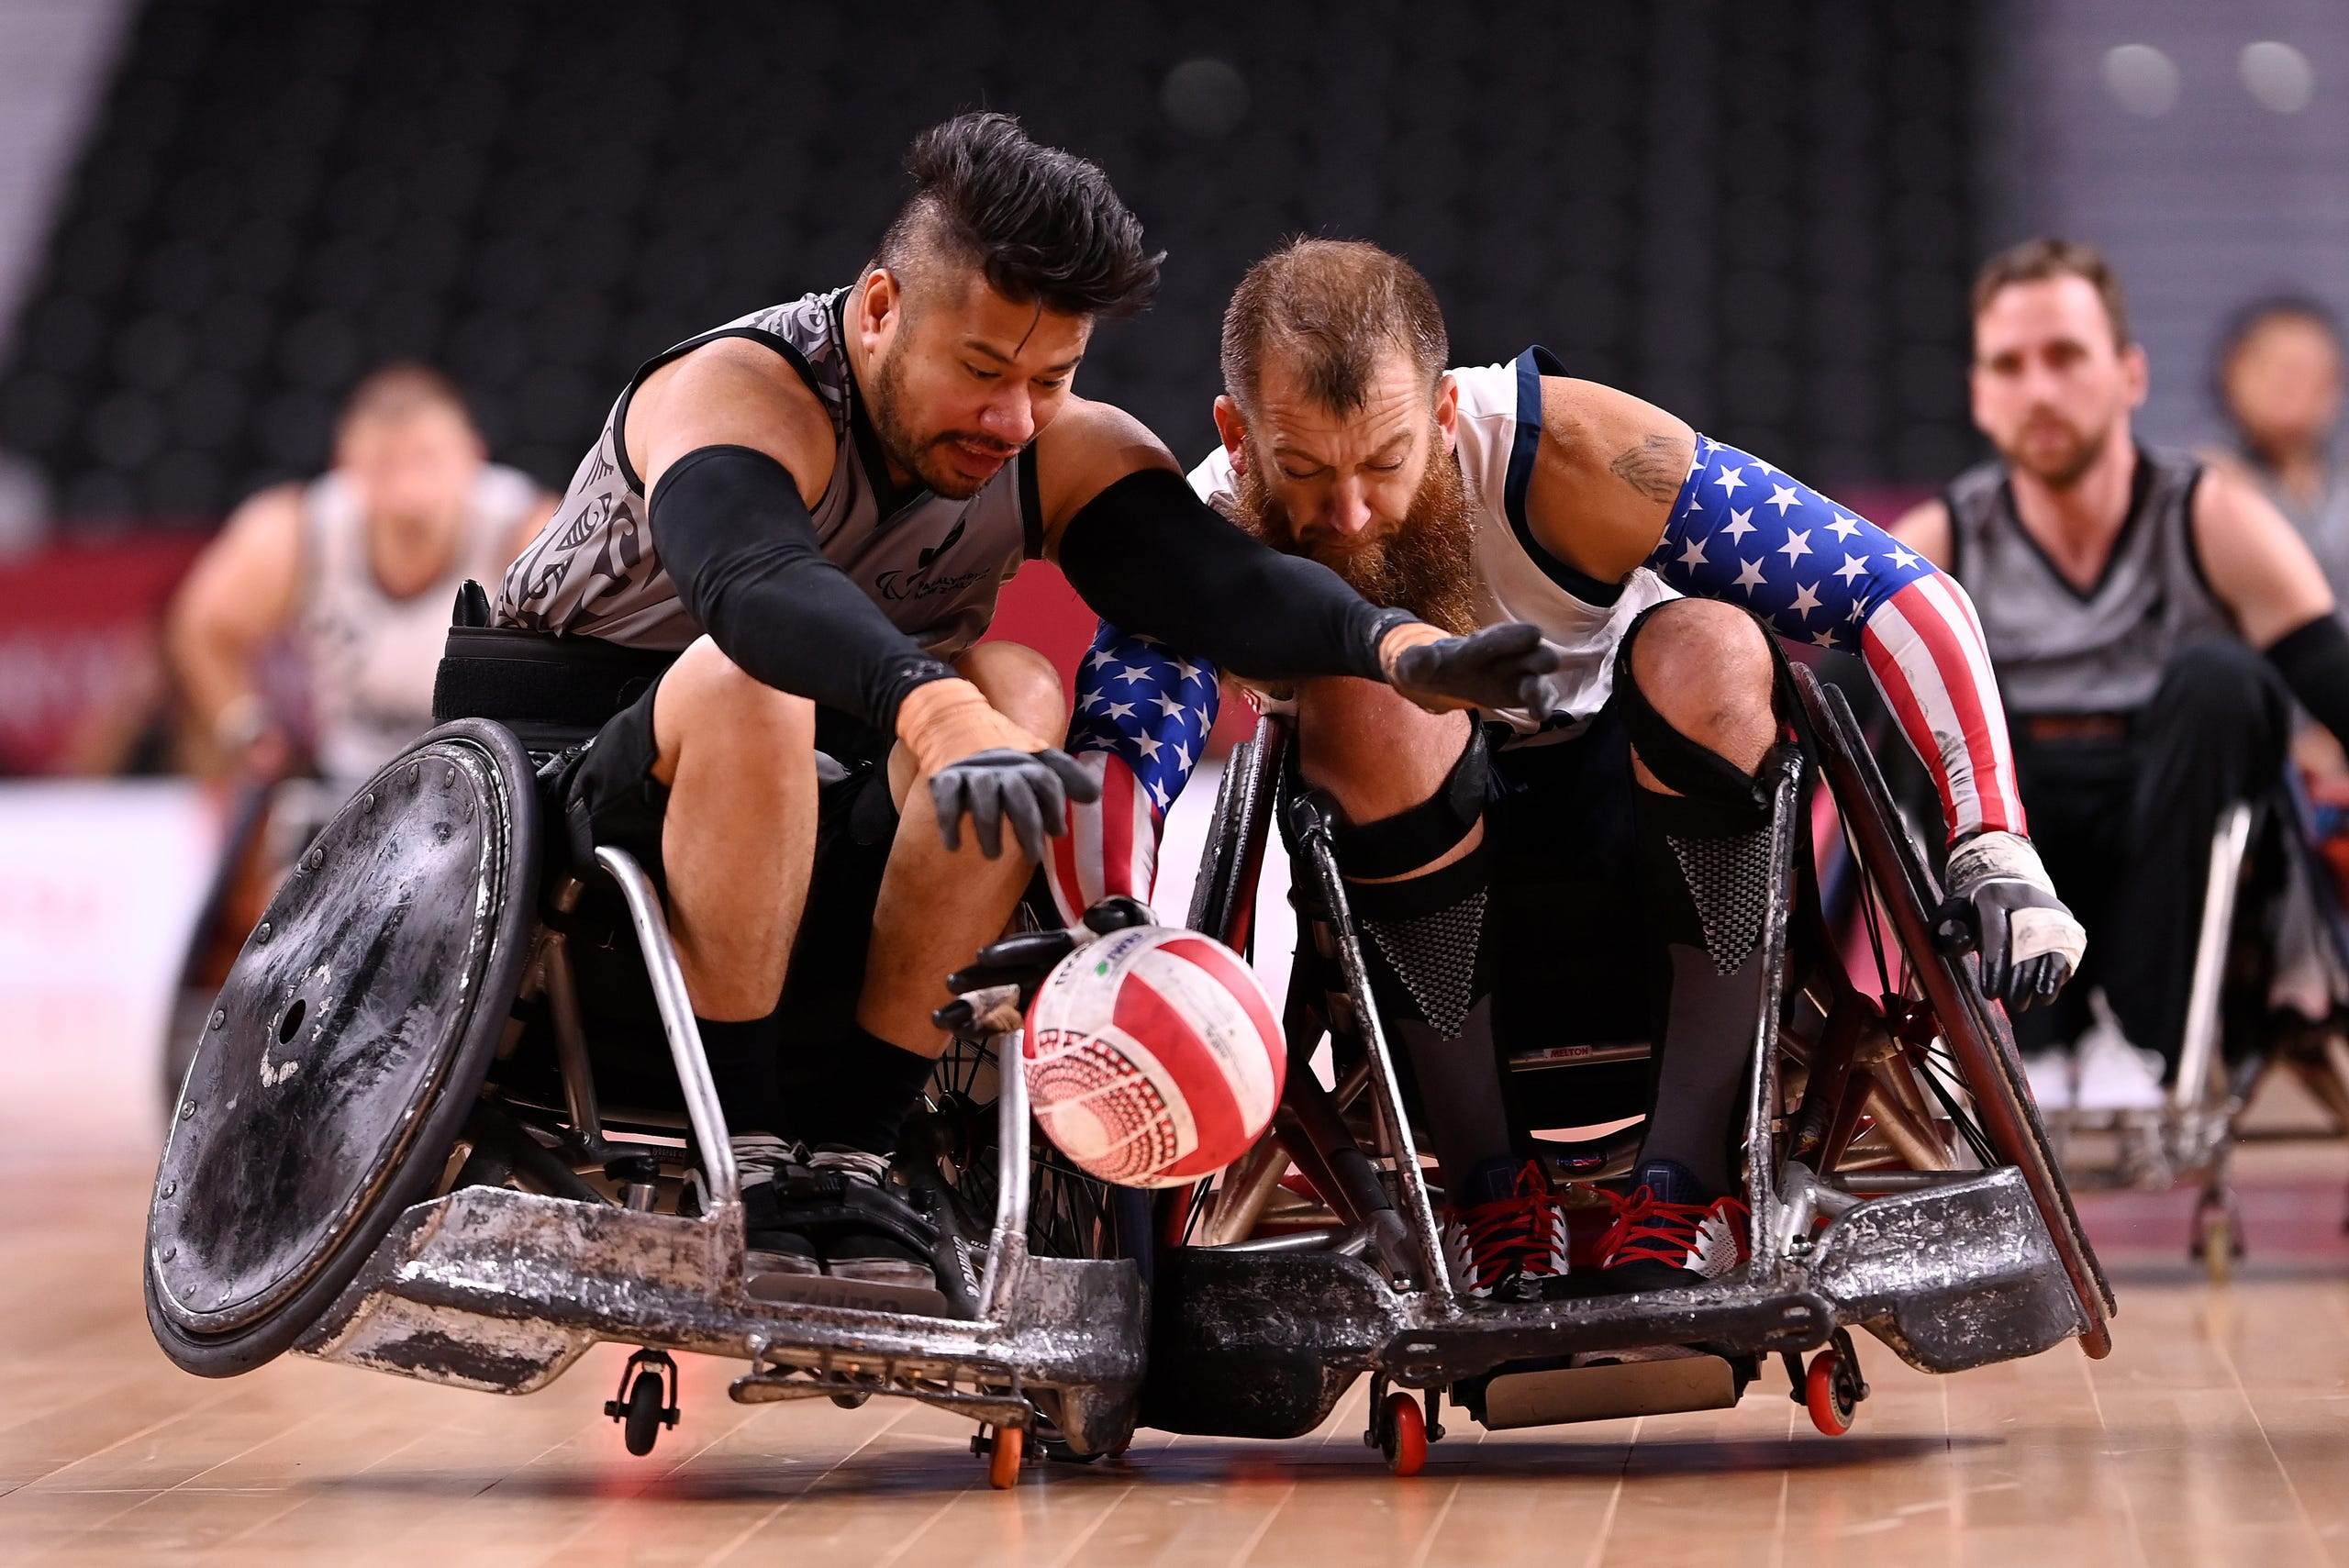 August 25, 2021: Tainafi Lefono of Team New Zealand is tackled by Charles Melton of Team United States during the Wheelchair Rugby Pool Phase Group B match between Team United States and Team New Zealand on day 1 of the Tokyo 2020 Paralympic Games at Yoyogi National Stadium in Tokyo, Japan.